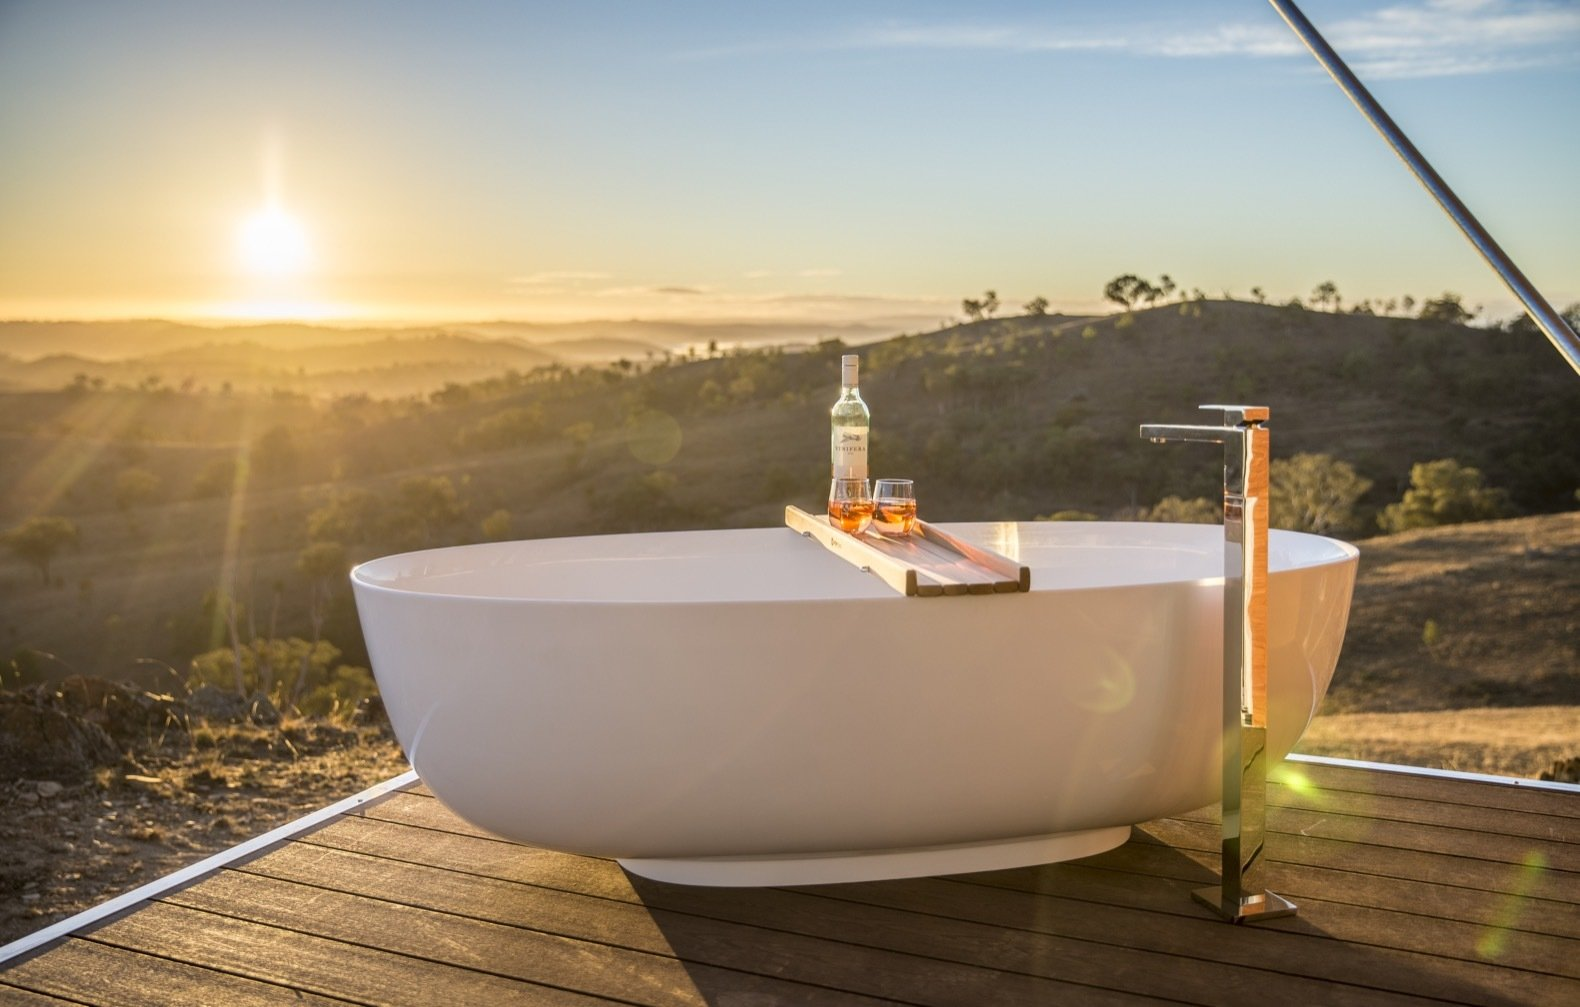 Bath Room, Freestanding Tub, and Medium Hardwood Floor Crafted for honeymooners, the Uralla tent boasts the amenities of the Dulili in addition to an outdoor freestanding bathtub, prime hilltop views, and complimentary champagne and treats.   Photo 11 of 11 in Escape to the Australian Bush in Style With These Eco-Friendly, Luxe Tents